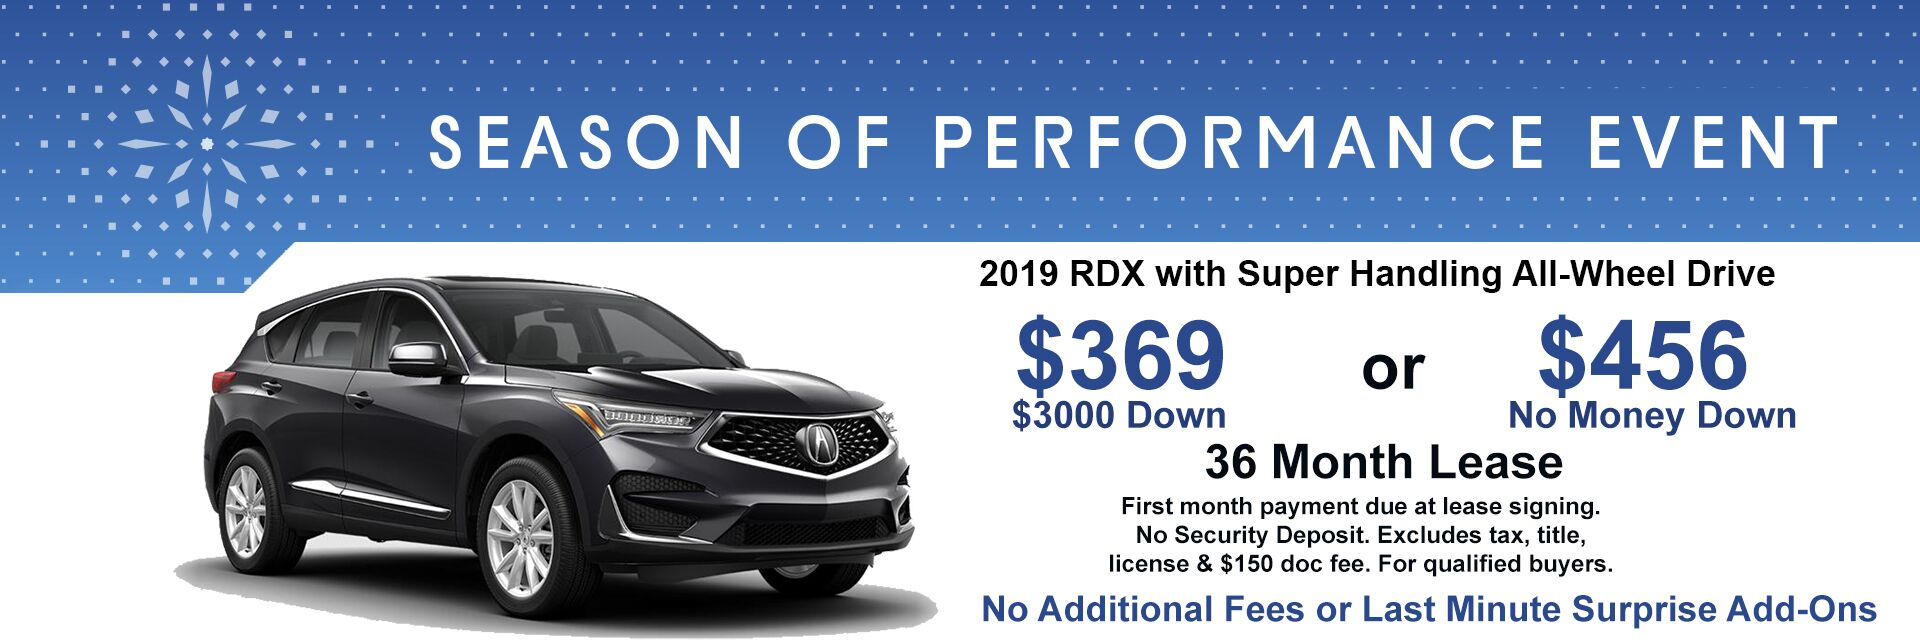 2019 RDX Lease Special